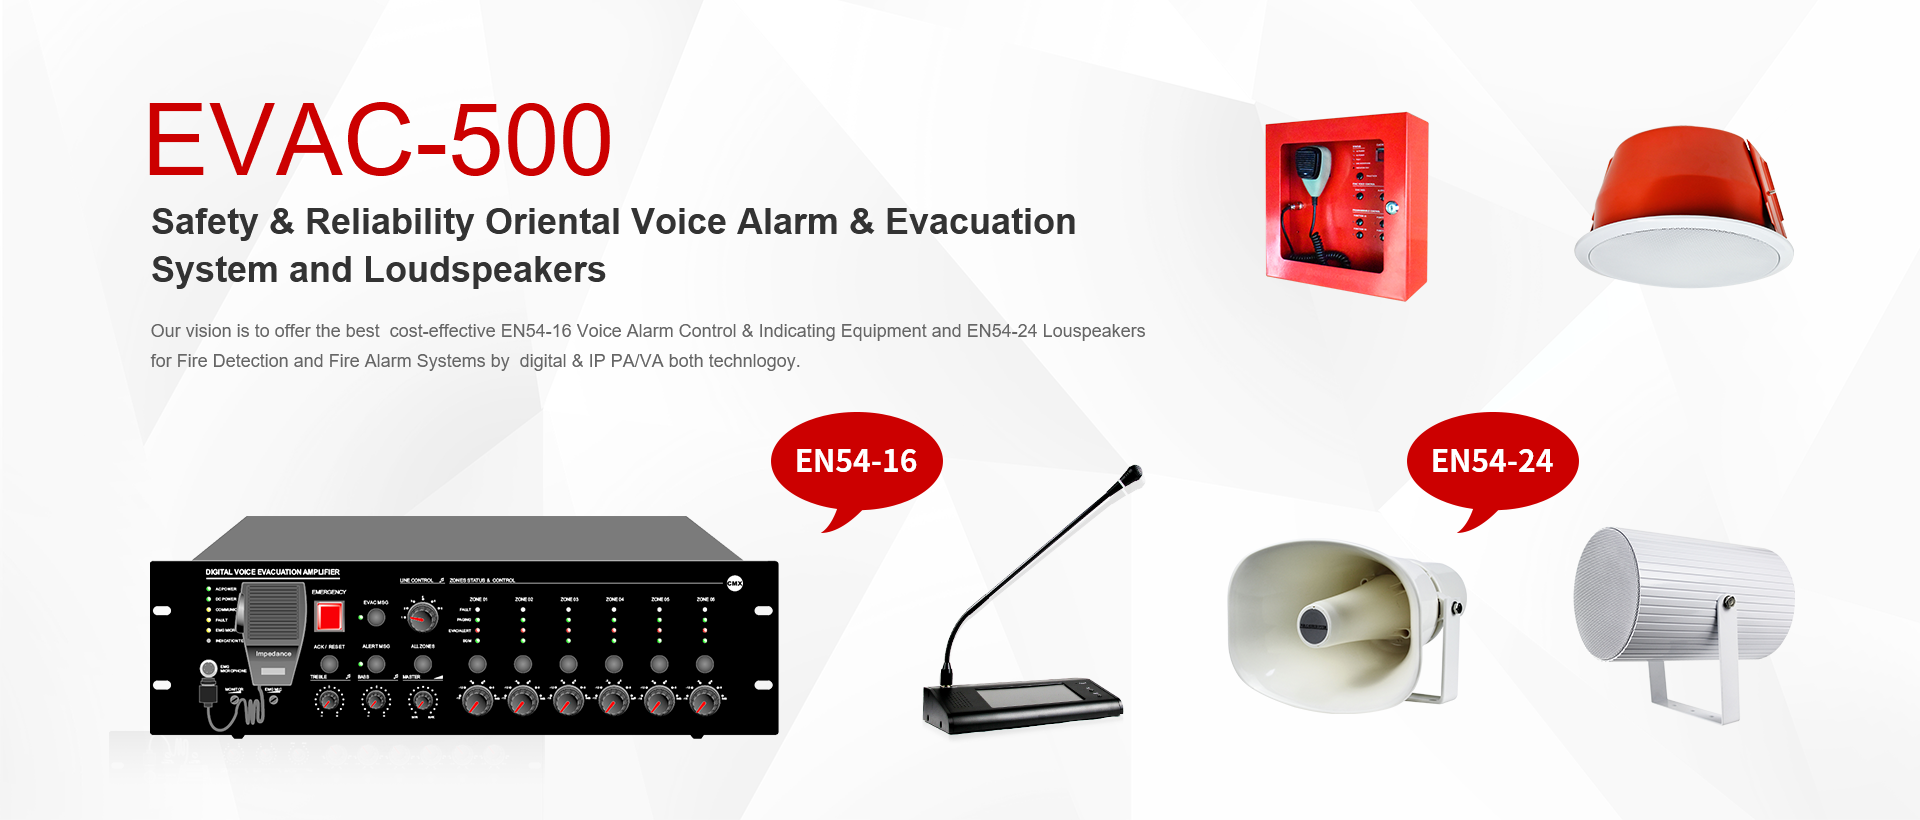 CMX AUDIO Public Address Voice Evacuation IP Audio